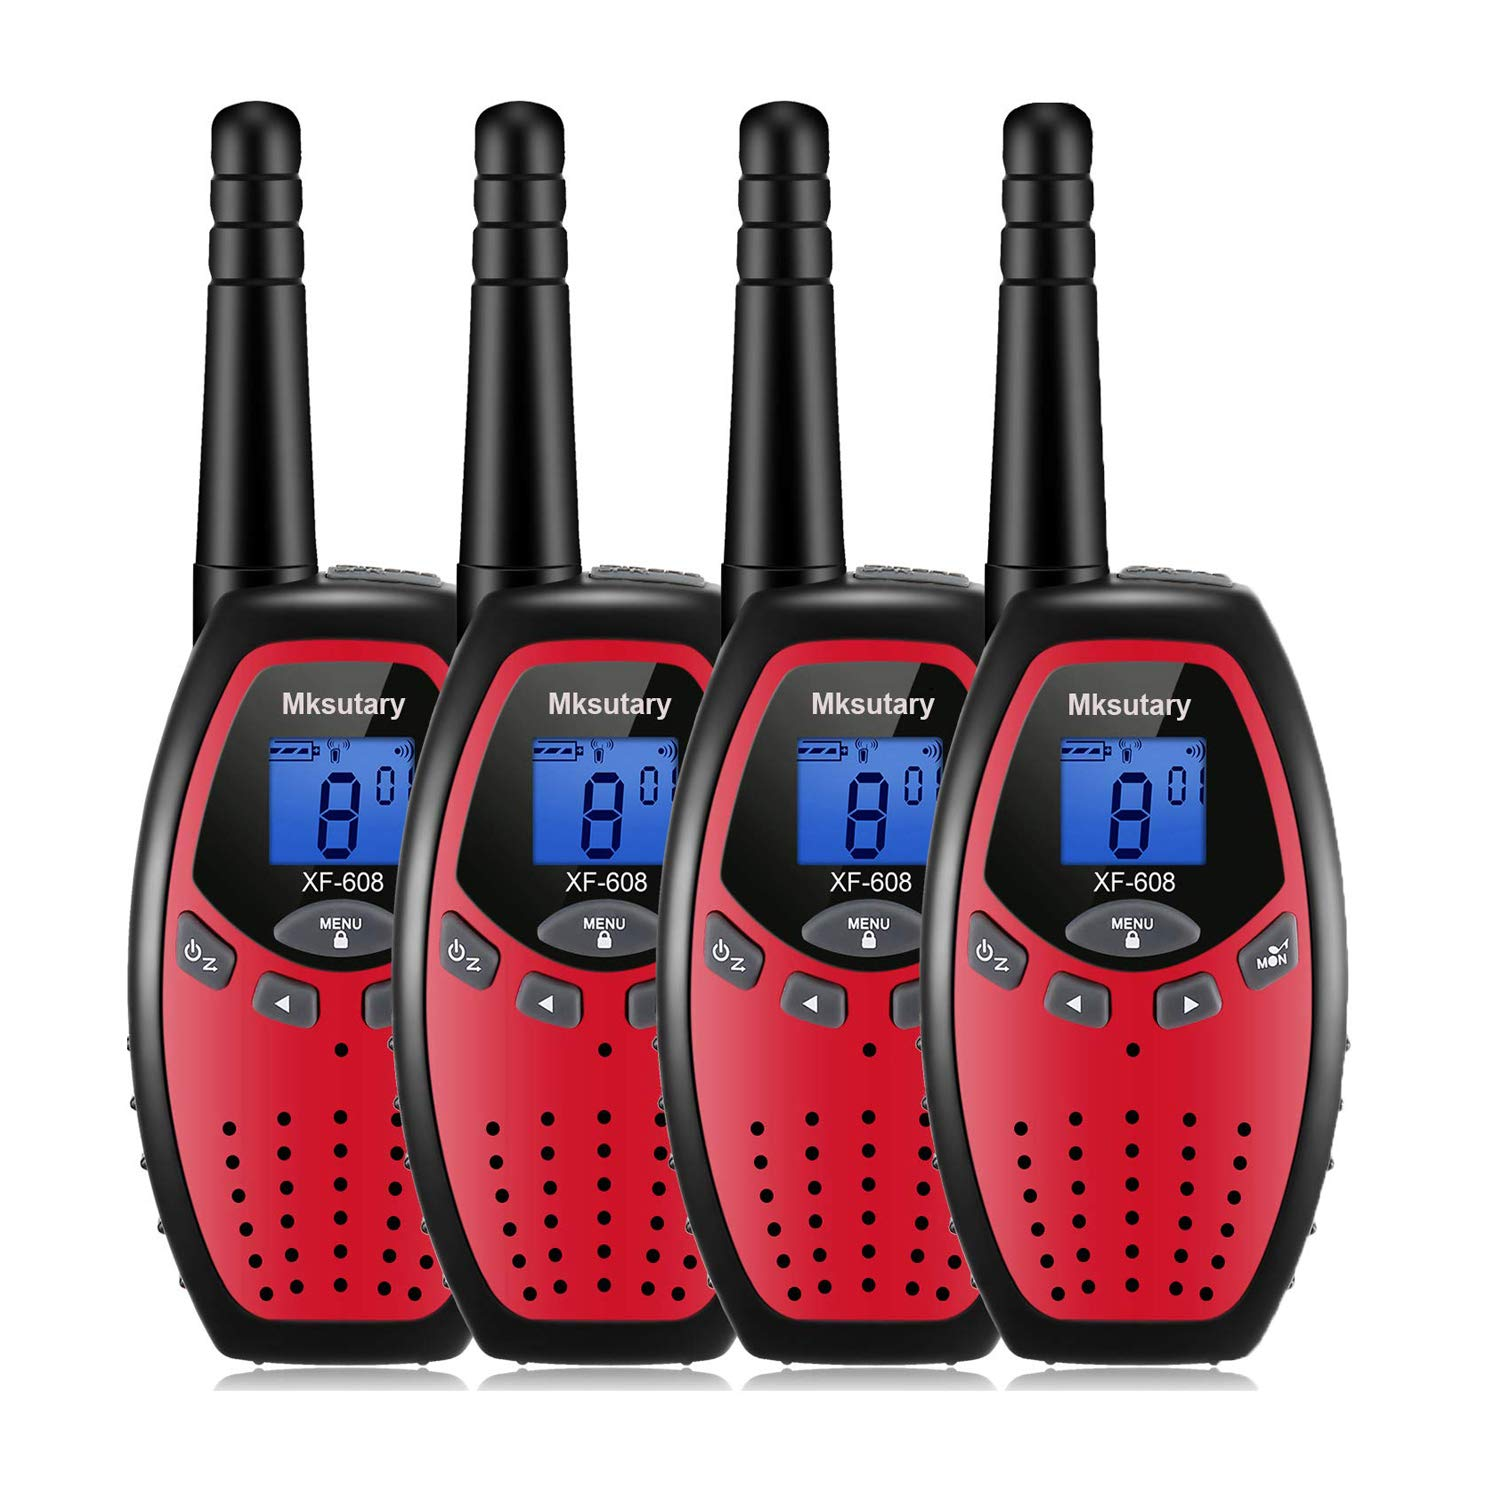 Kids Walkie Talkies 22 Channel GMRS Two Way Radios Long Range Handheld Walkie Talkies for Kids Adult Walkie Talky 4 Pack Red by Mksutary (Image #1)